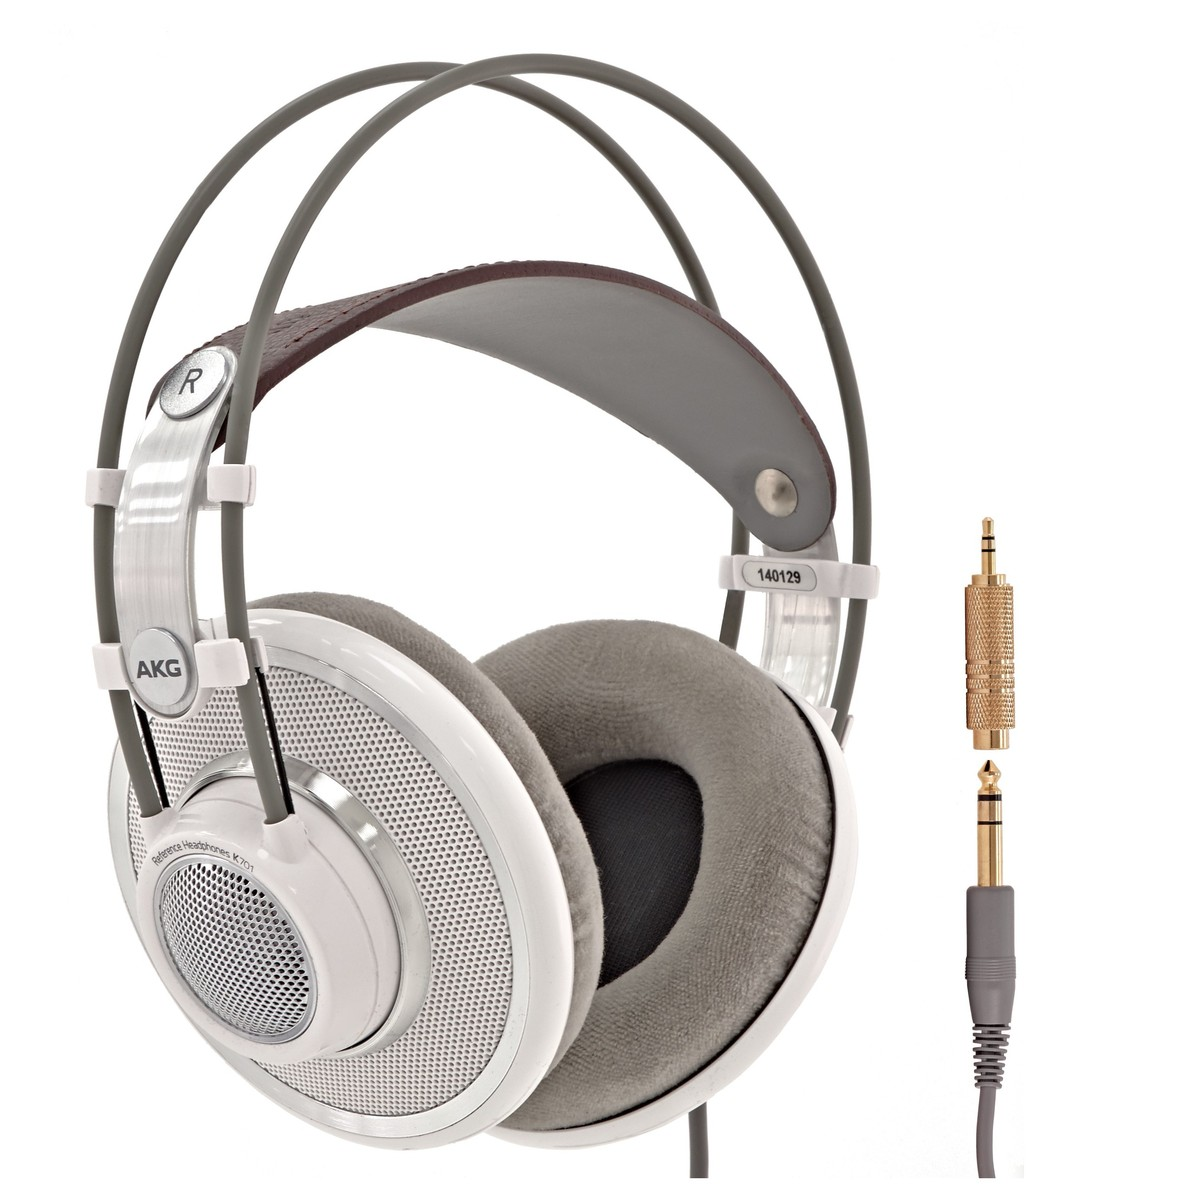 AKG K701 Headphones at Gear4music